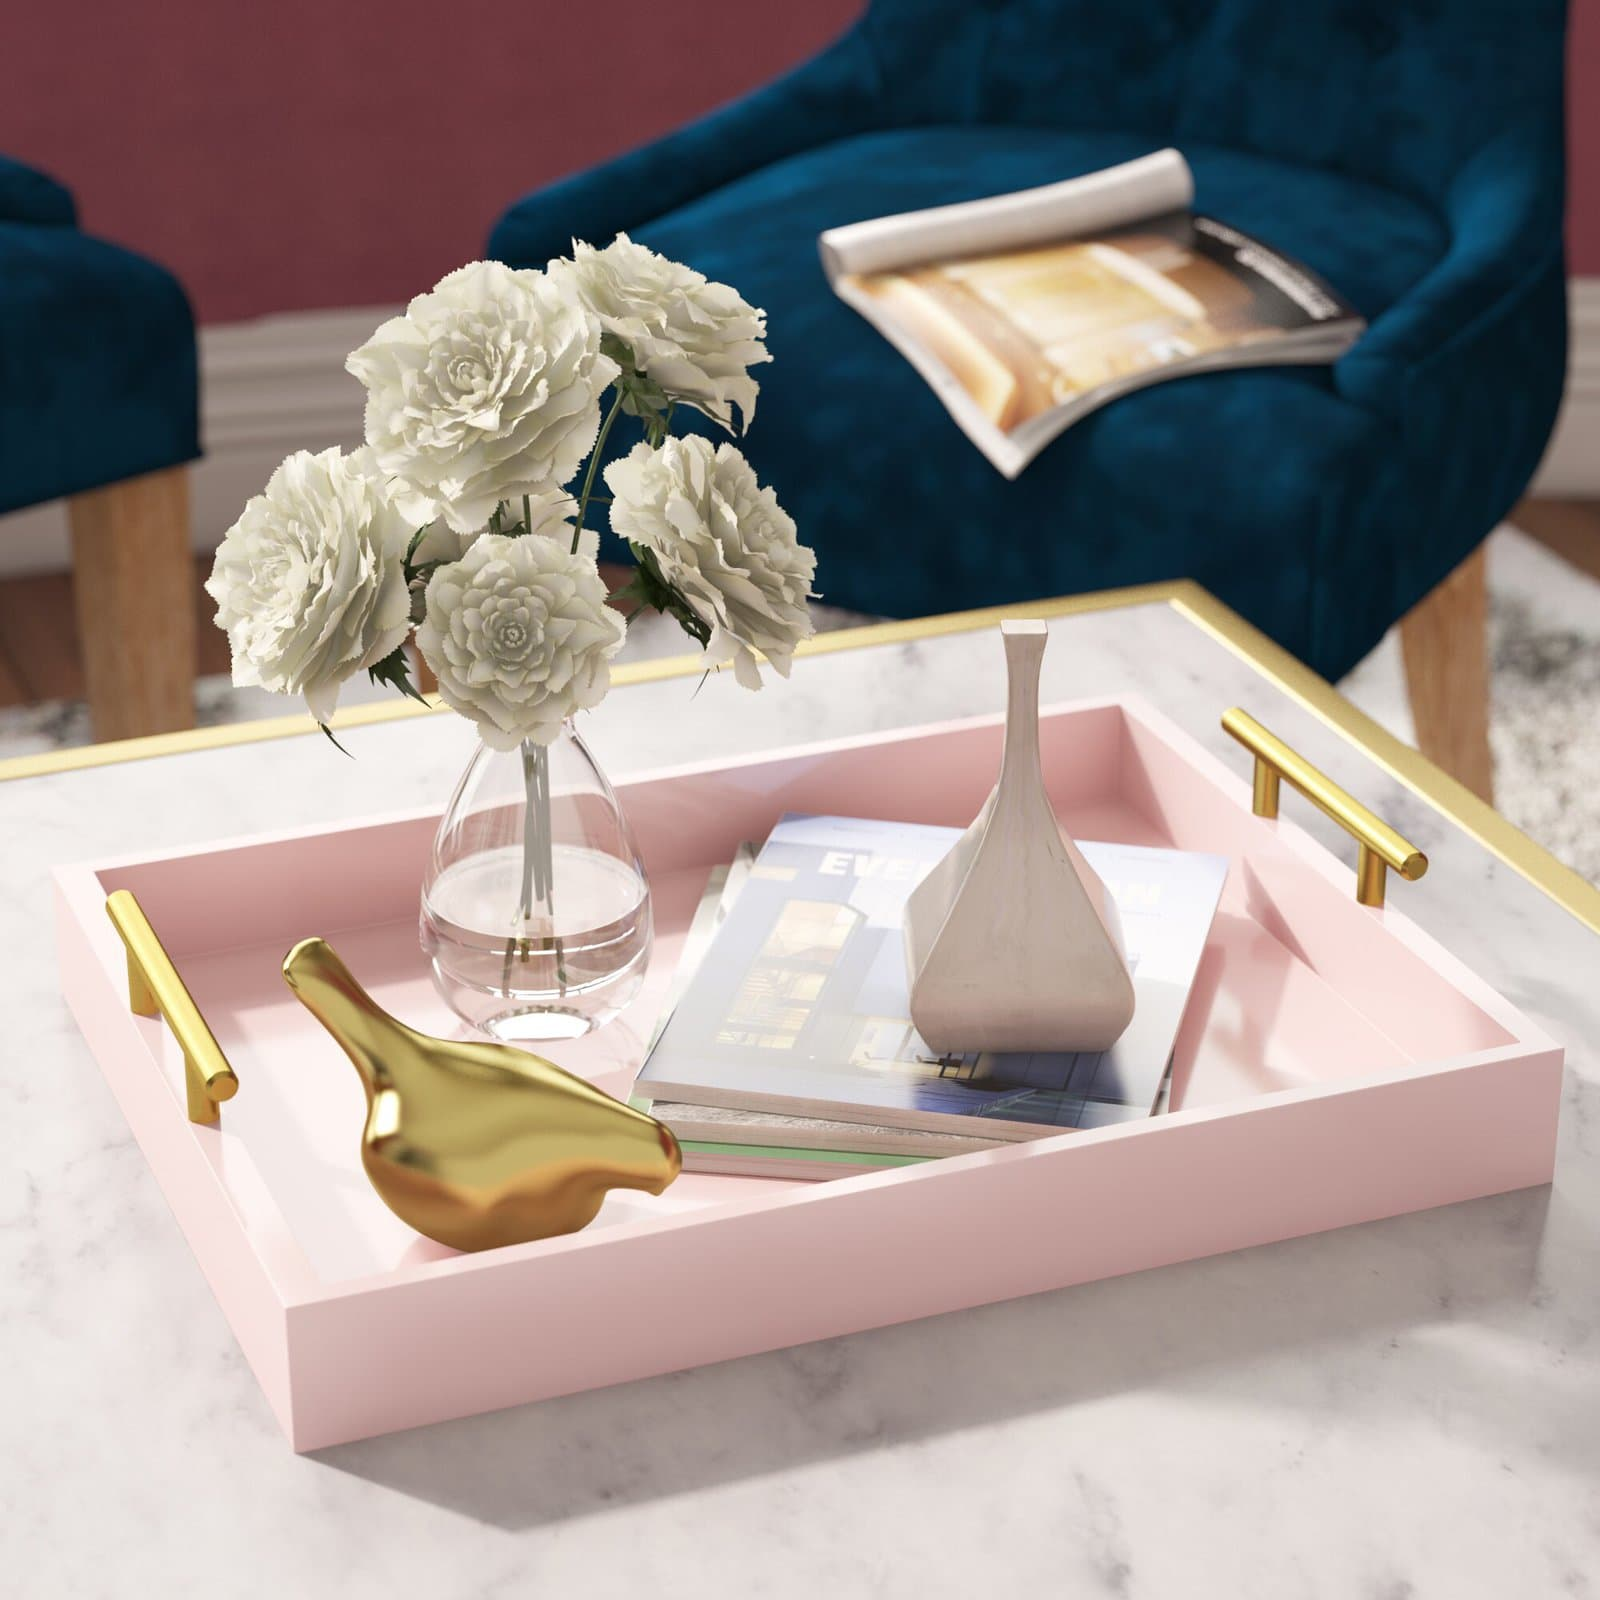 Organize your Clutter with this Stunning Decorative Tray